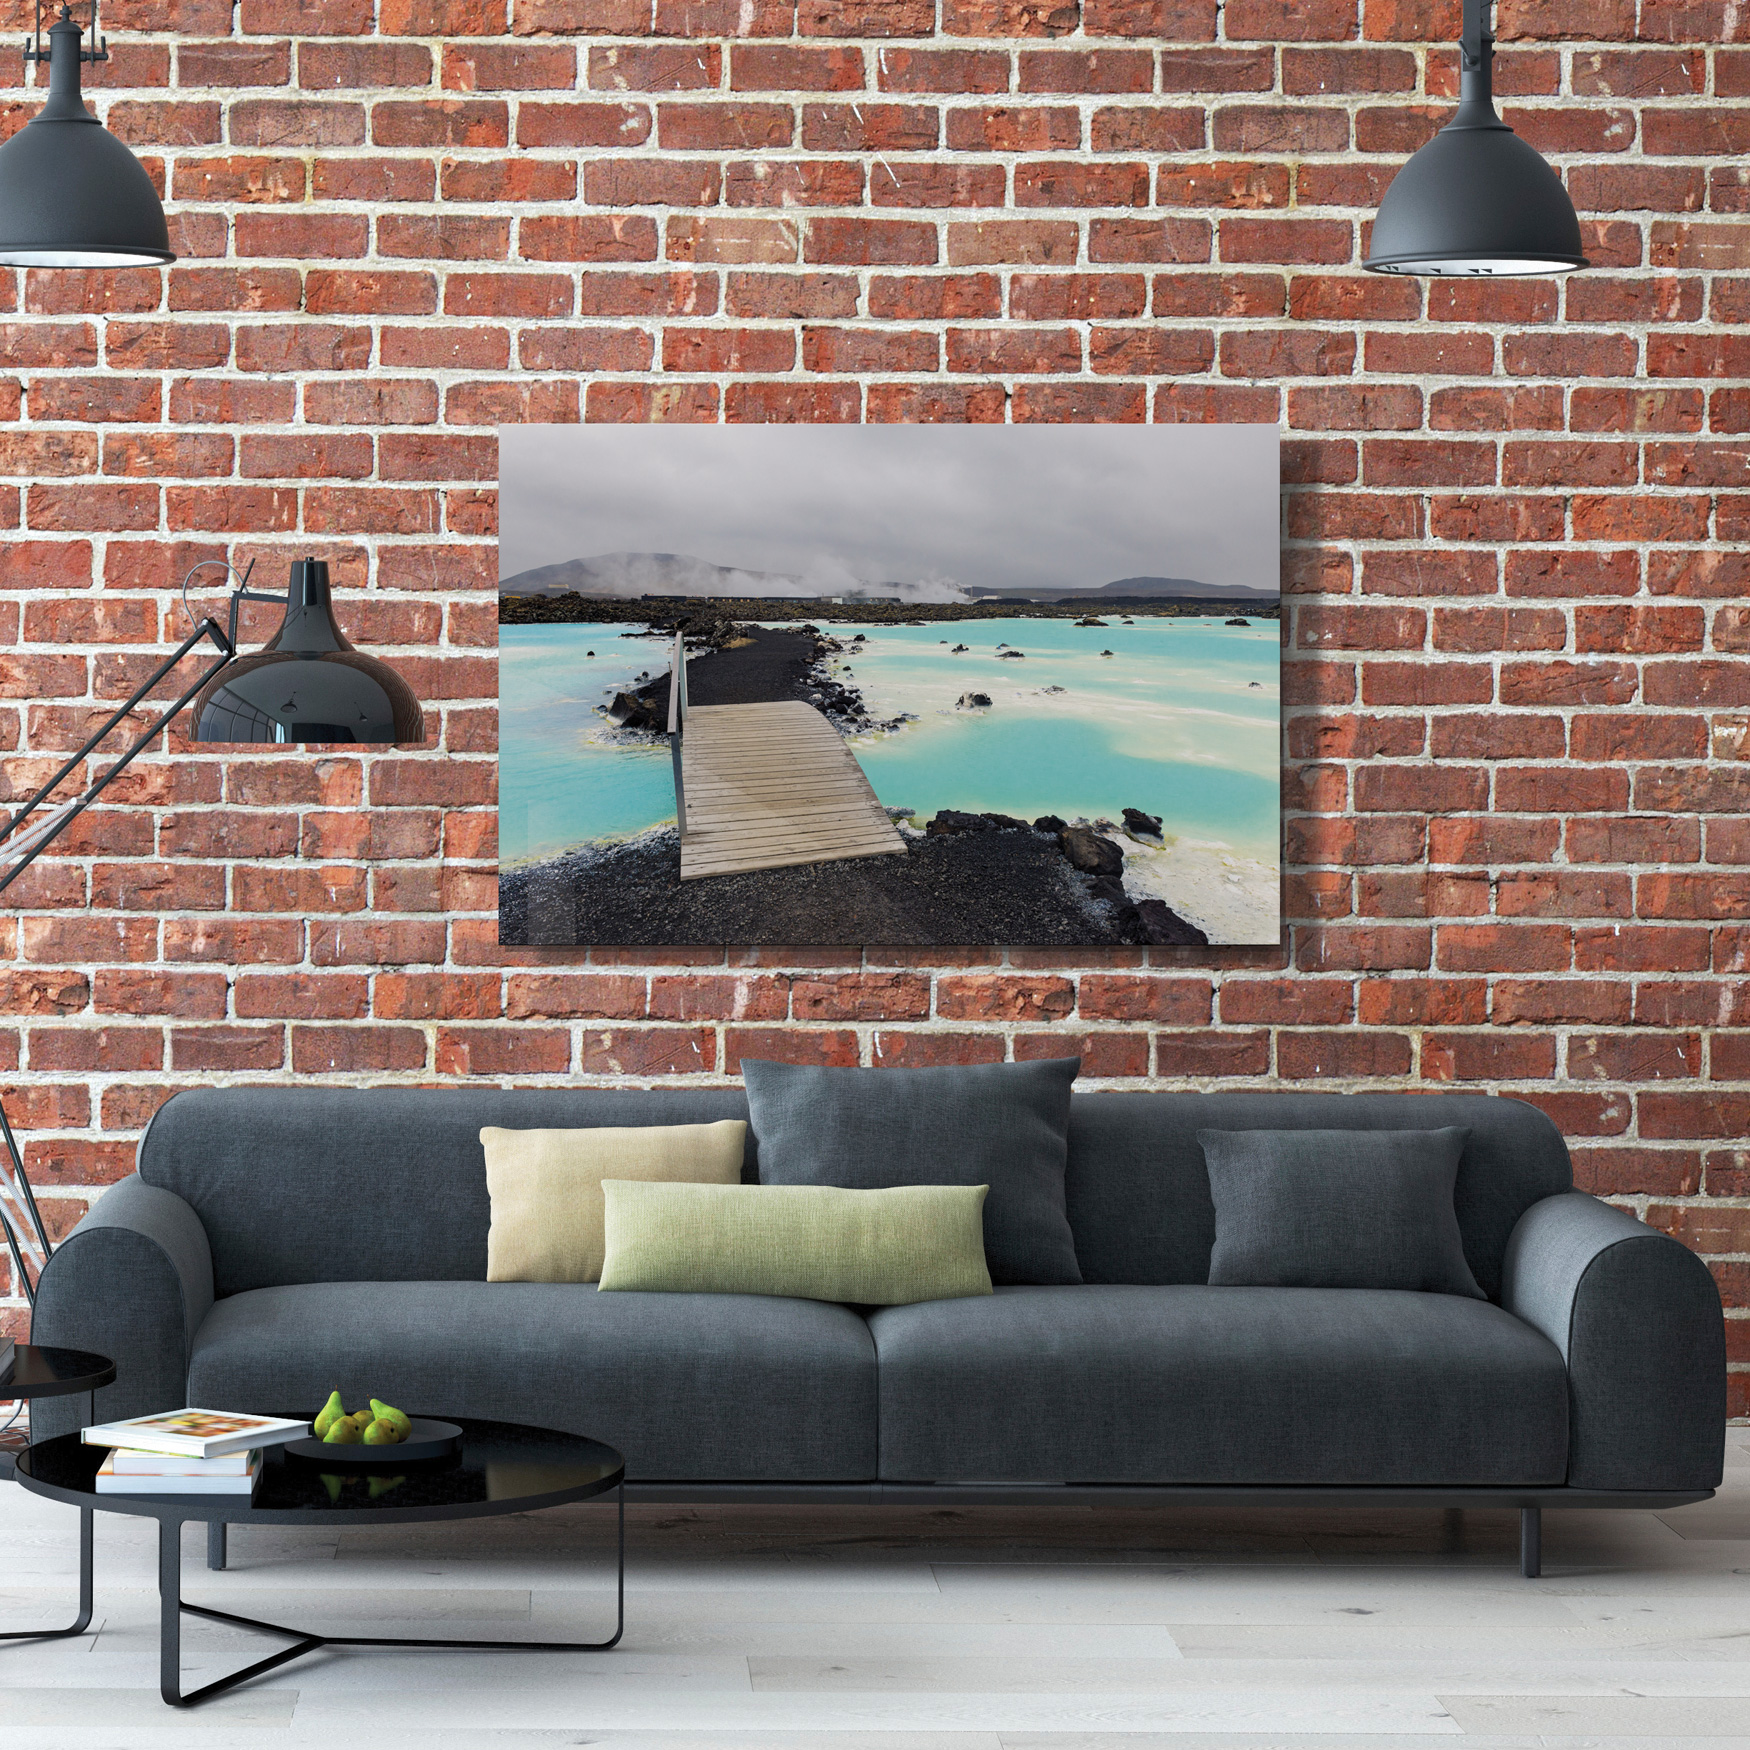 ChromaLuxe® dye sub metal picture of water and bridge over couch